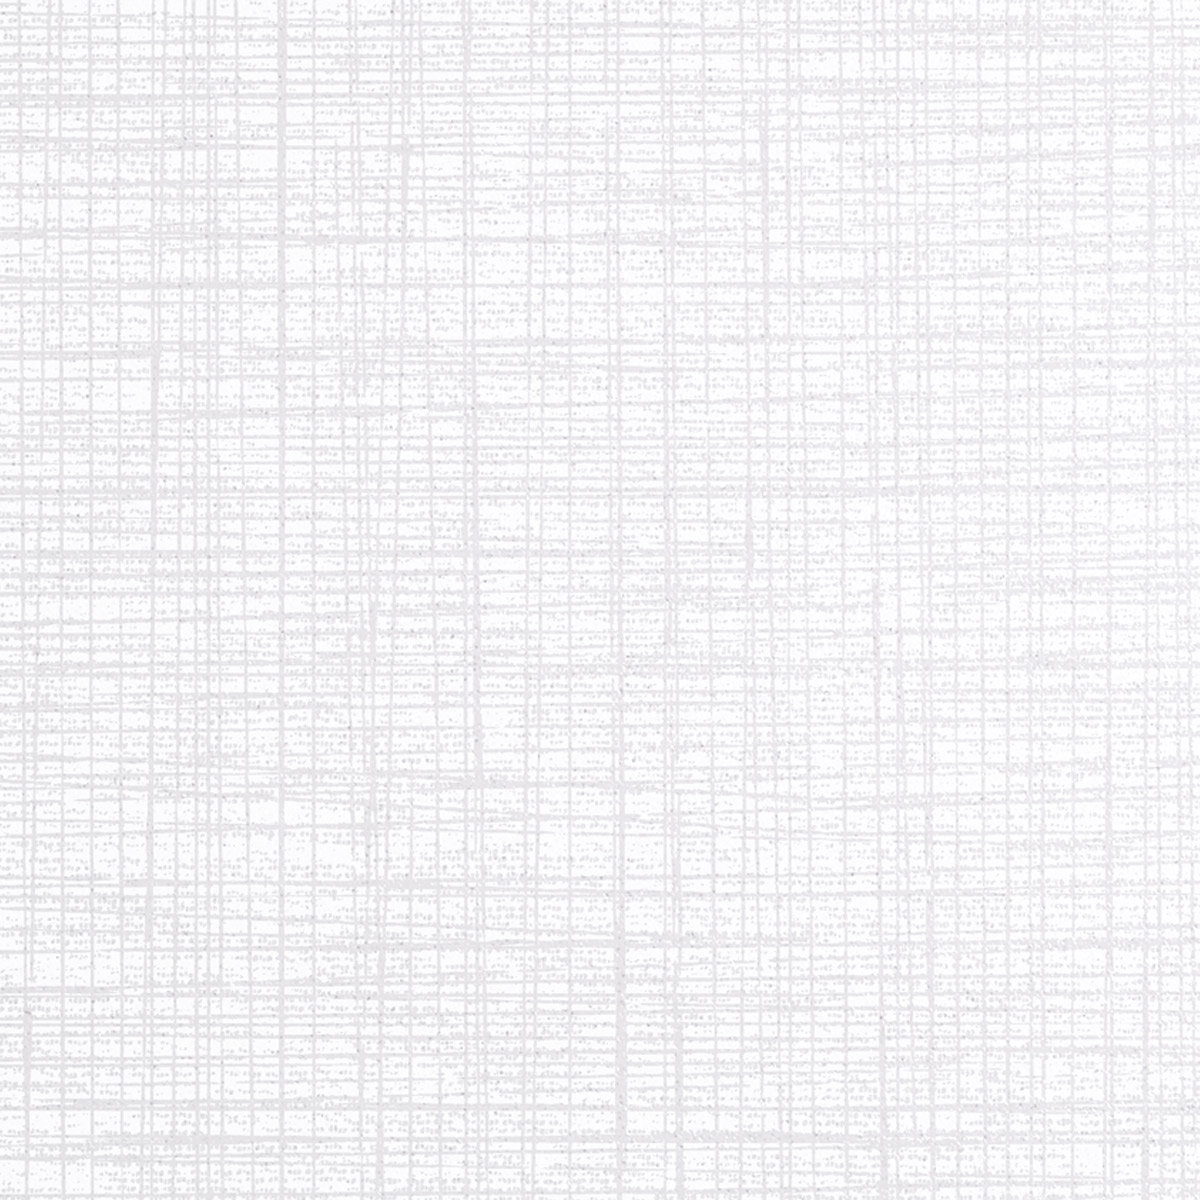 T10947 FROM EXCEL ELECTRA LUX SUPER WHITE 24X24 P1